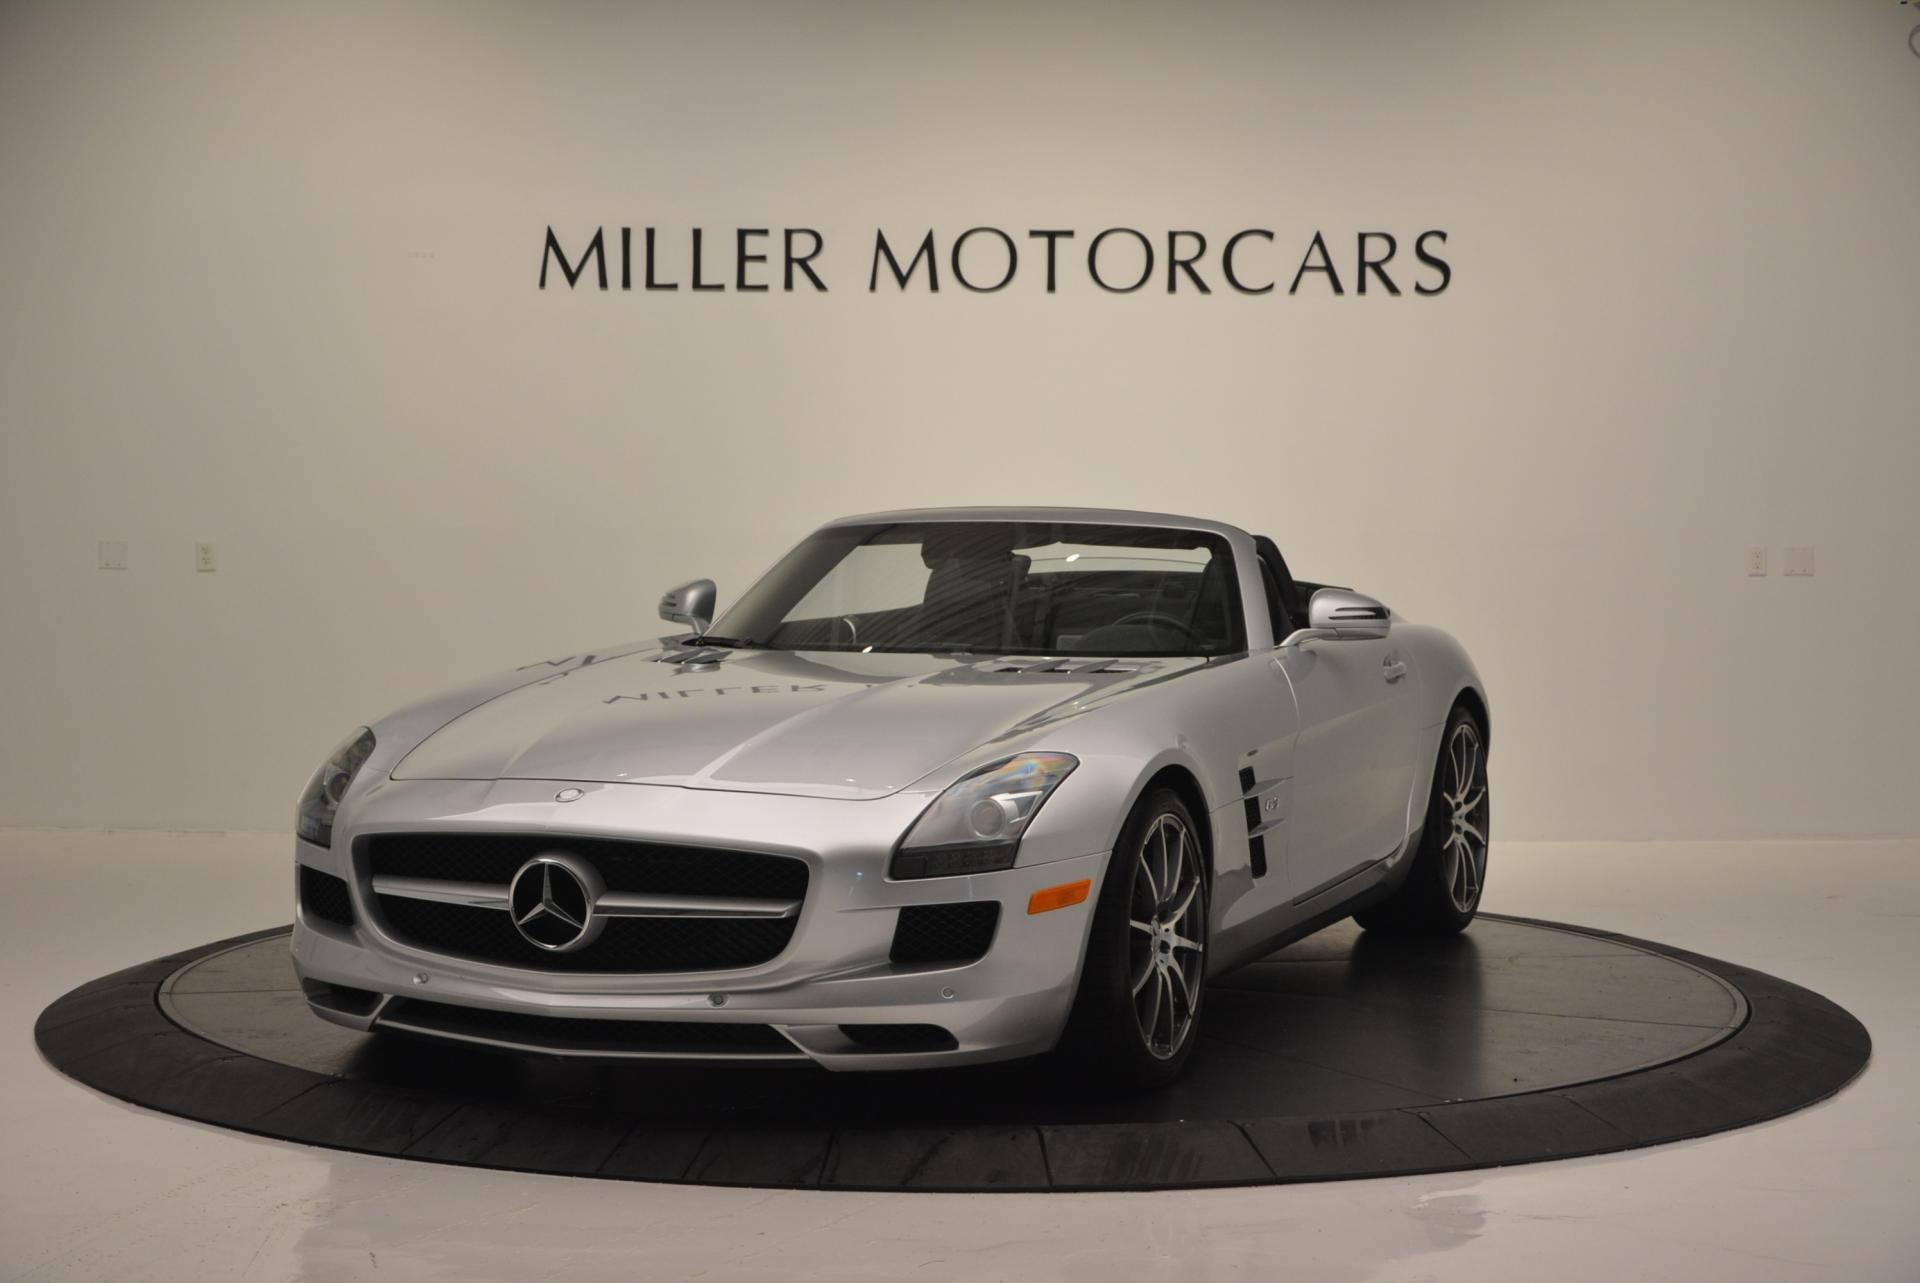 Used 2012 Mercedes Benz SLS AMG for sale Sold at Aston Martin of Greenwich in Greenwich CT 06830 1